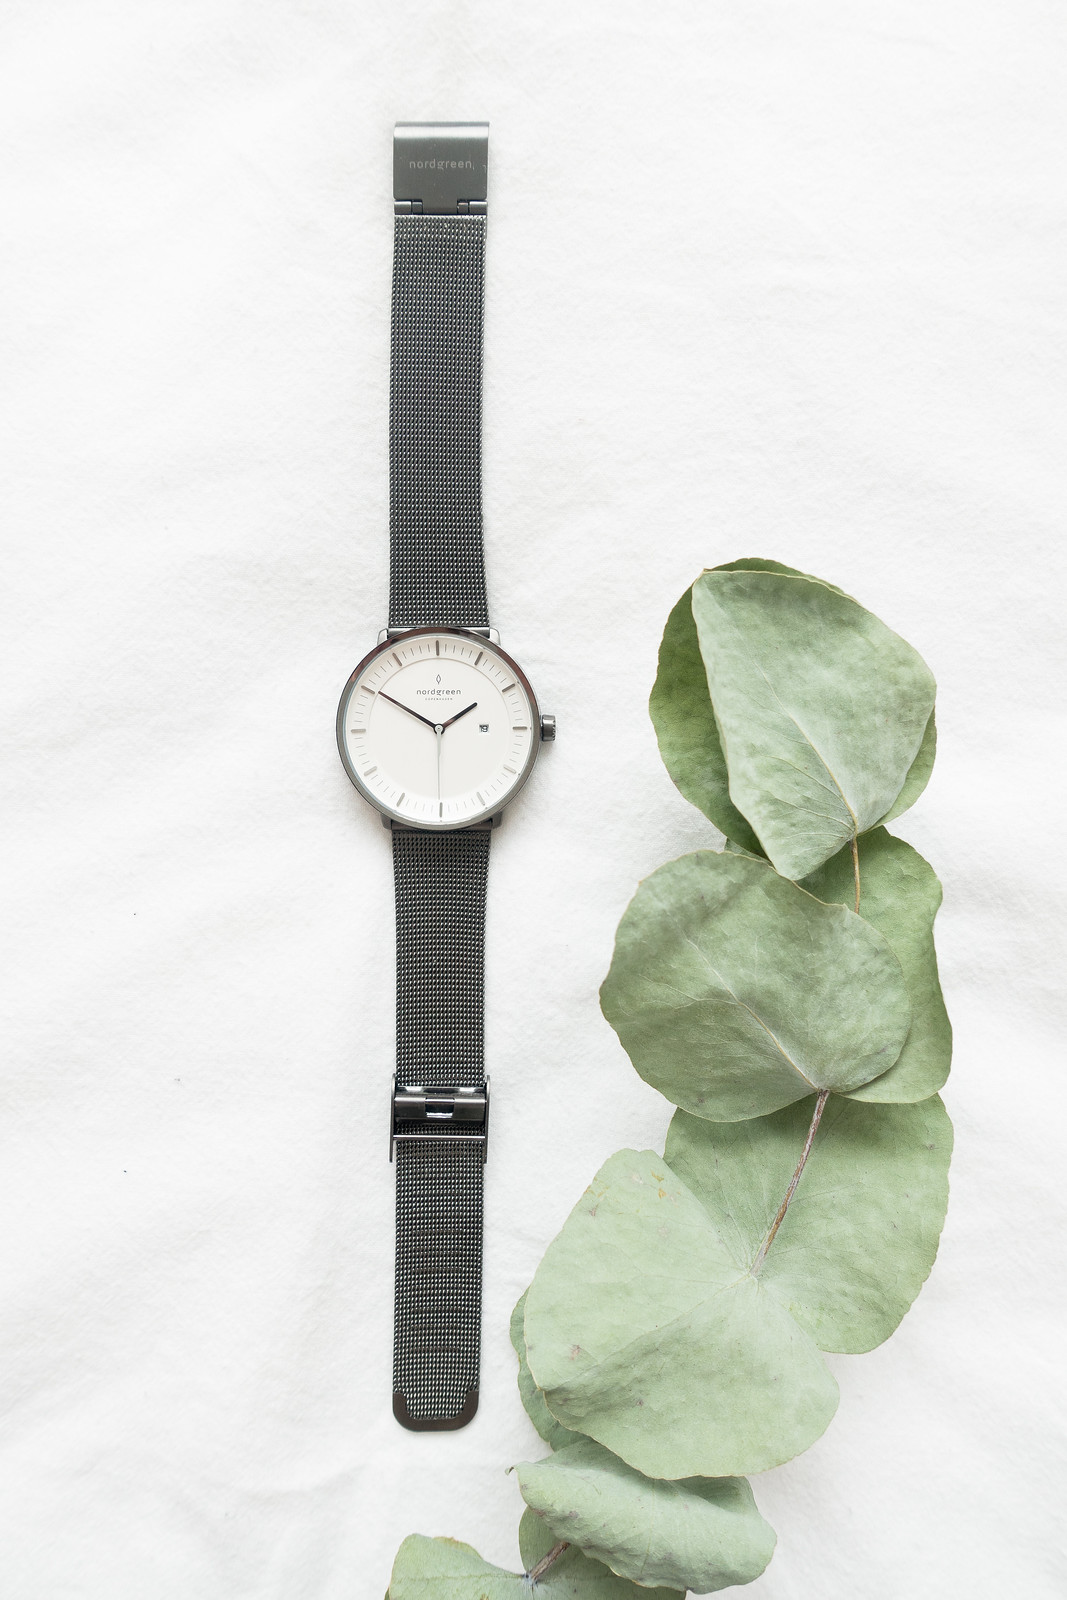 Choosing A Quality Watch With Nordgreen